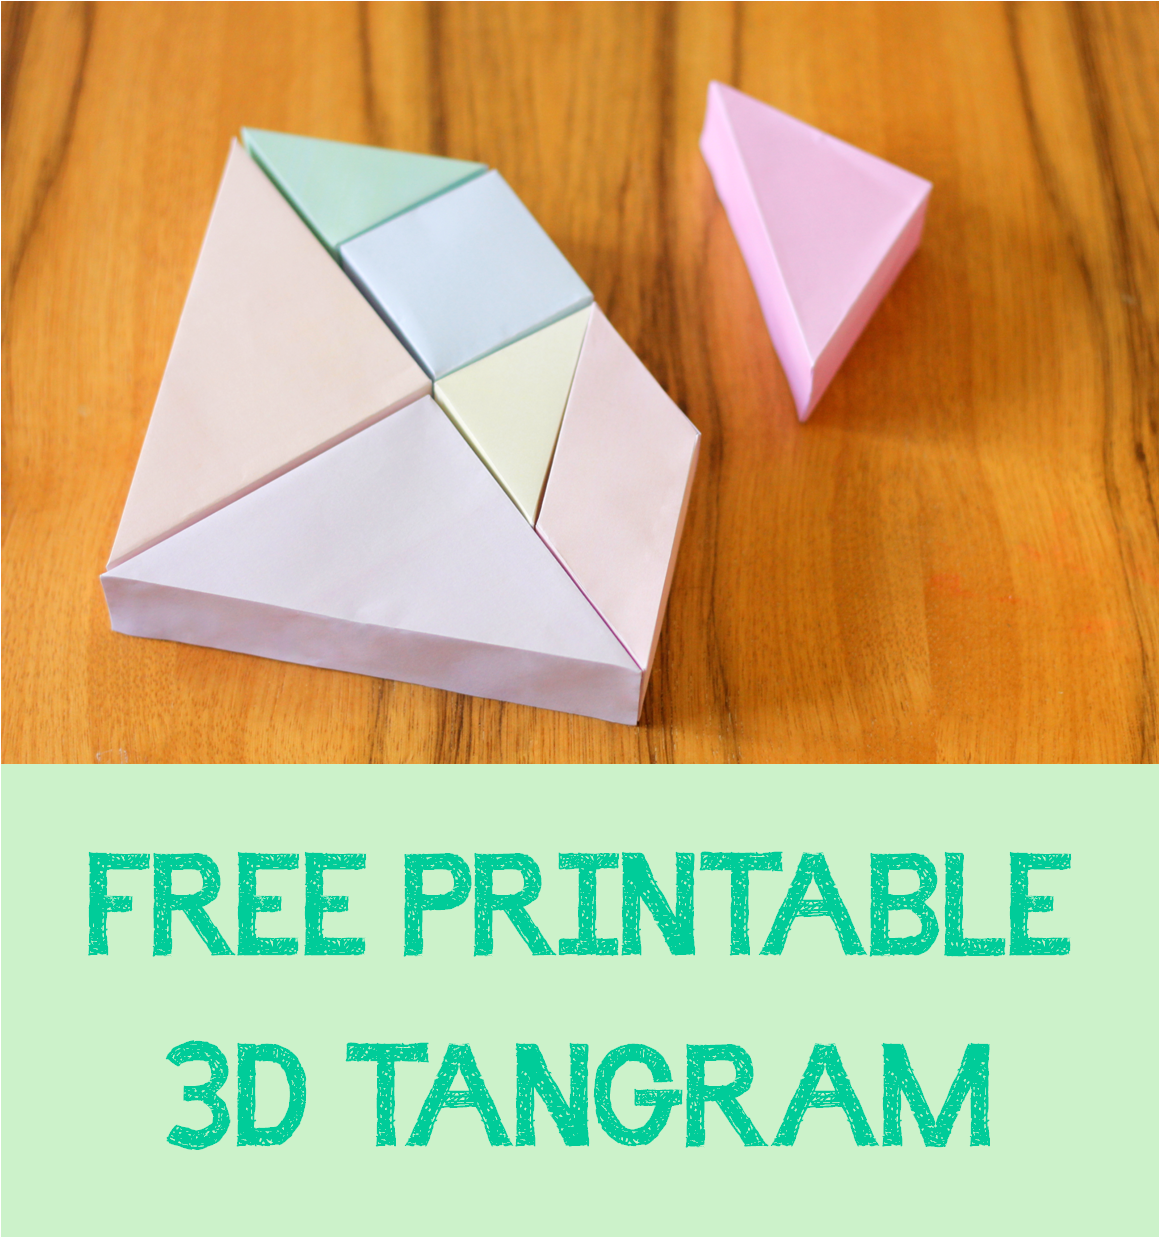 Free Printable 3D Tangram. Great Activity For Kids